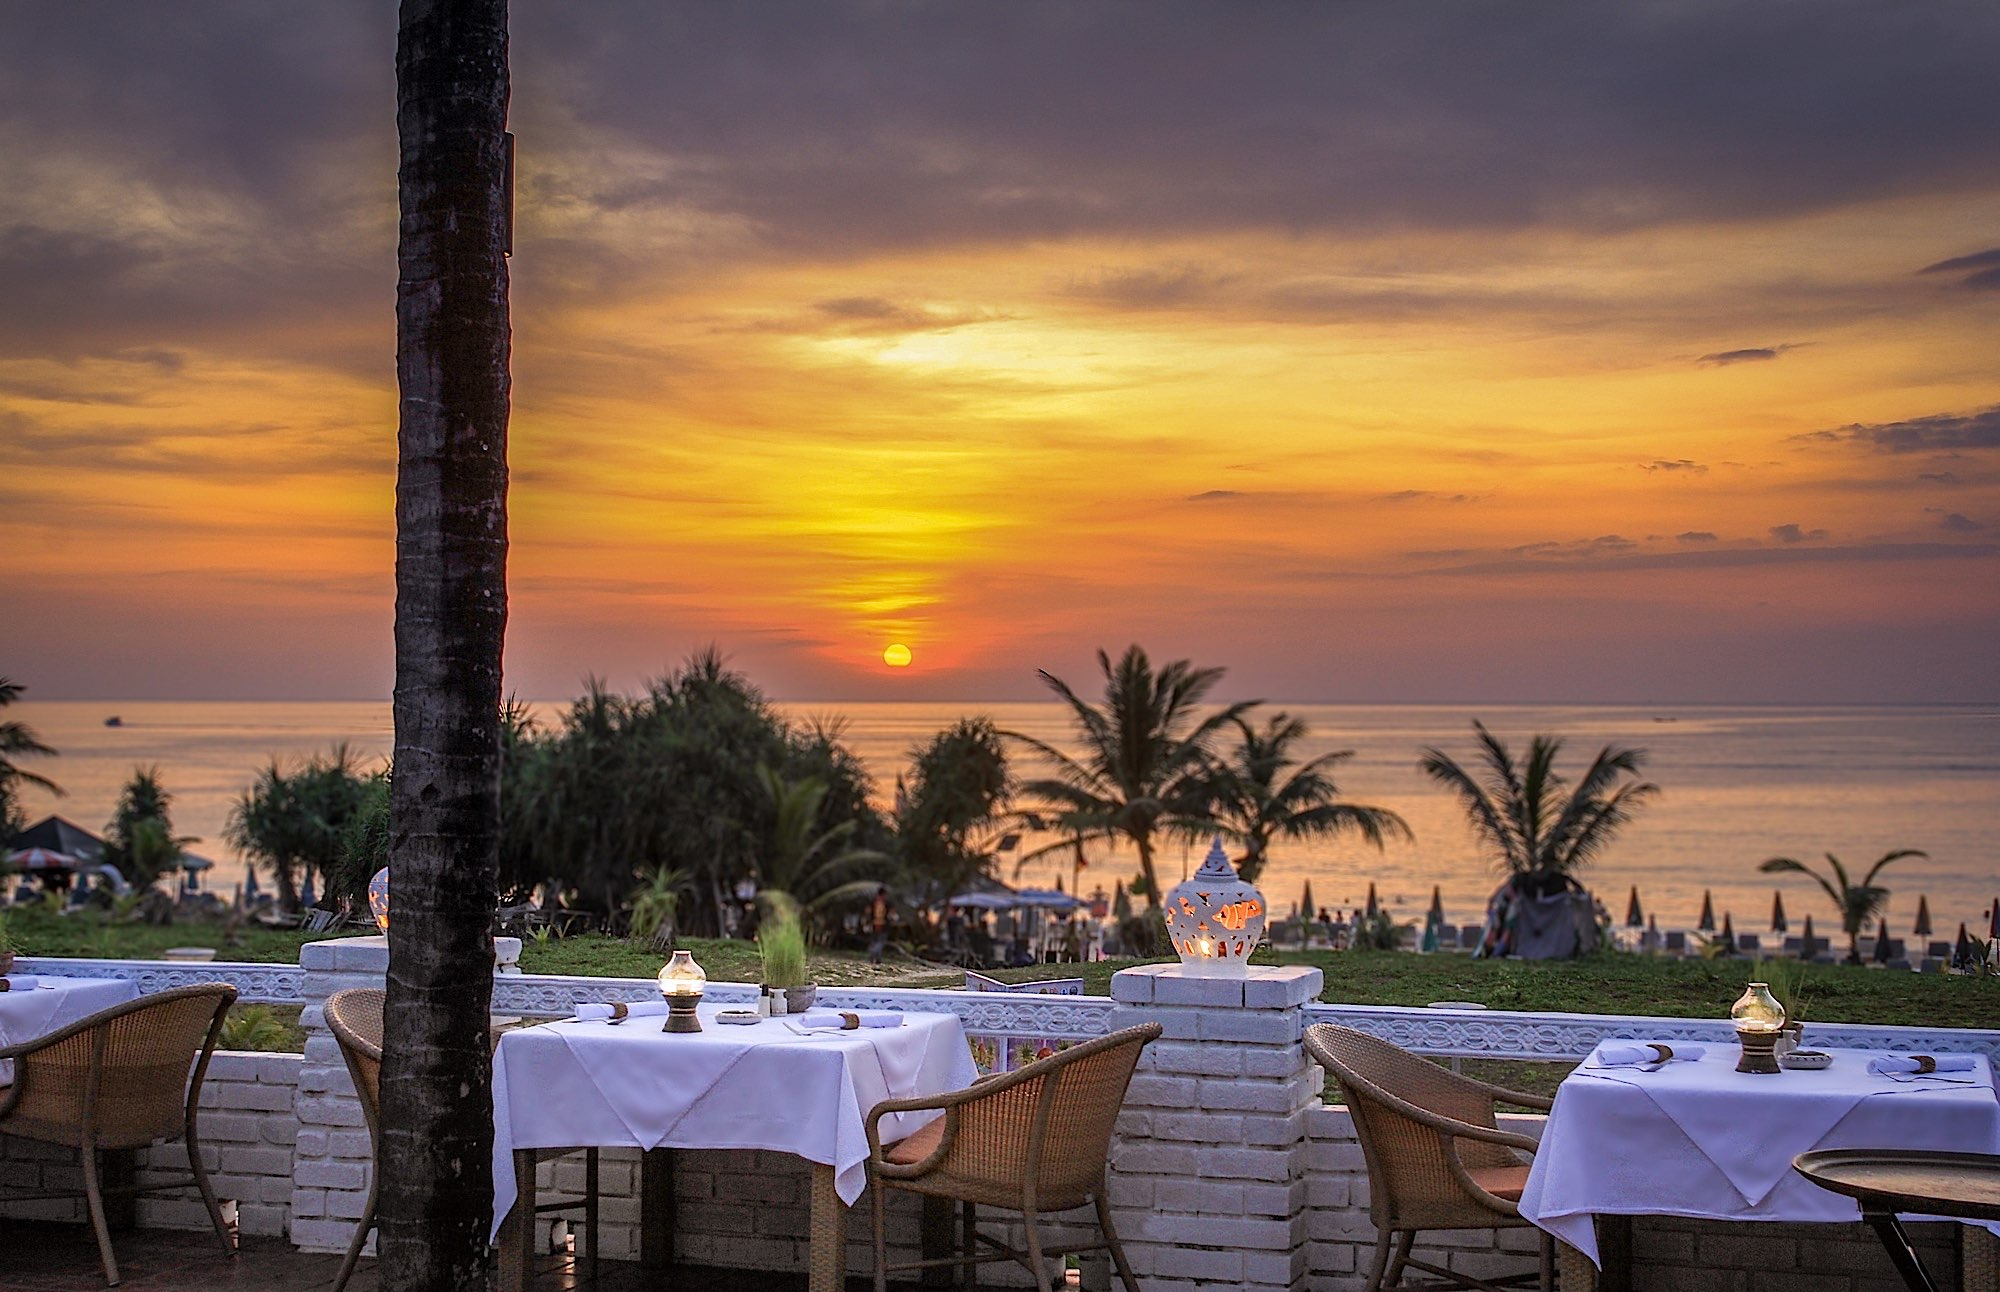 Karon Beachfront Restaurant Sunset View Phuket Thavorn Plam